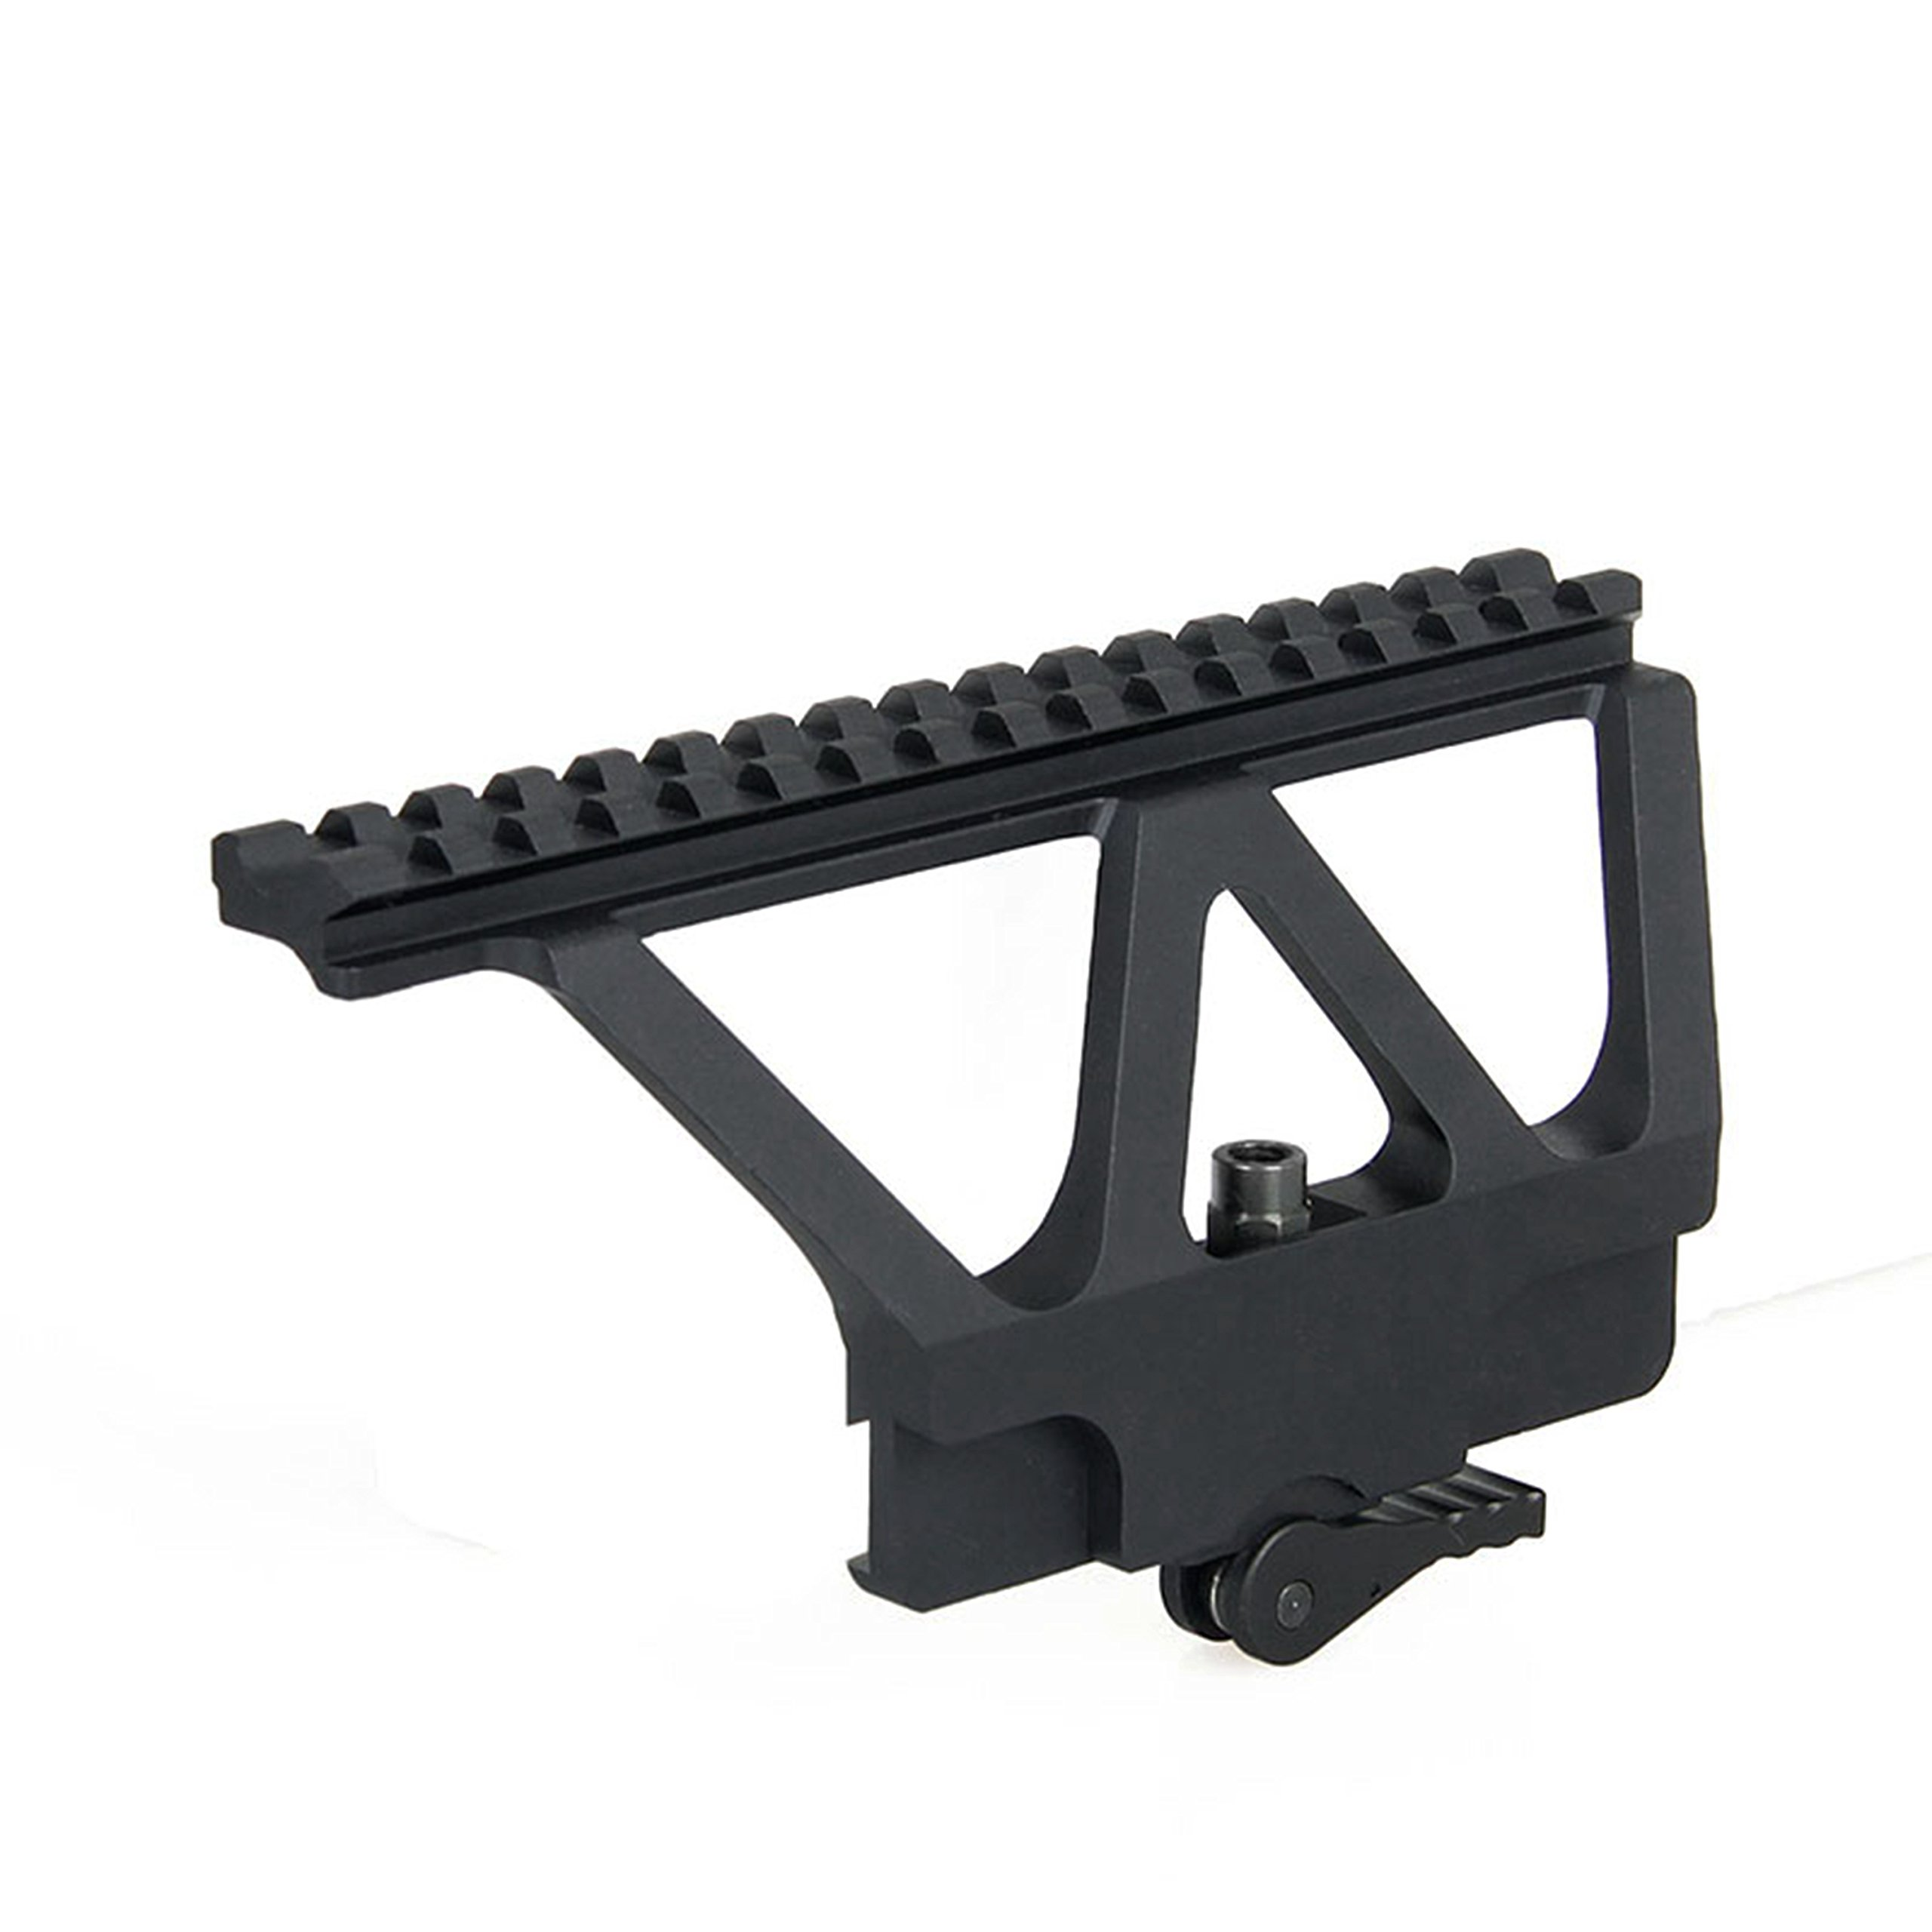 wipboten Red Dot Scope Mount Picatinny Weaver Scope Mount for Red Dot Sight Black